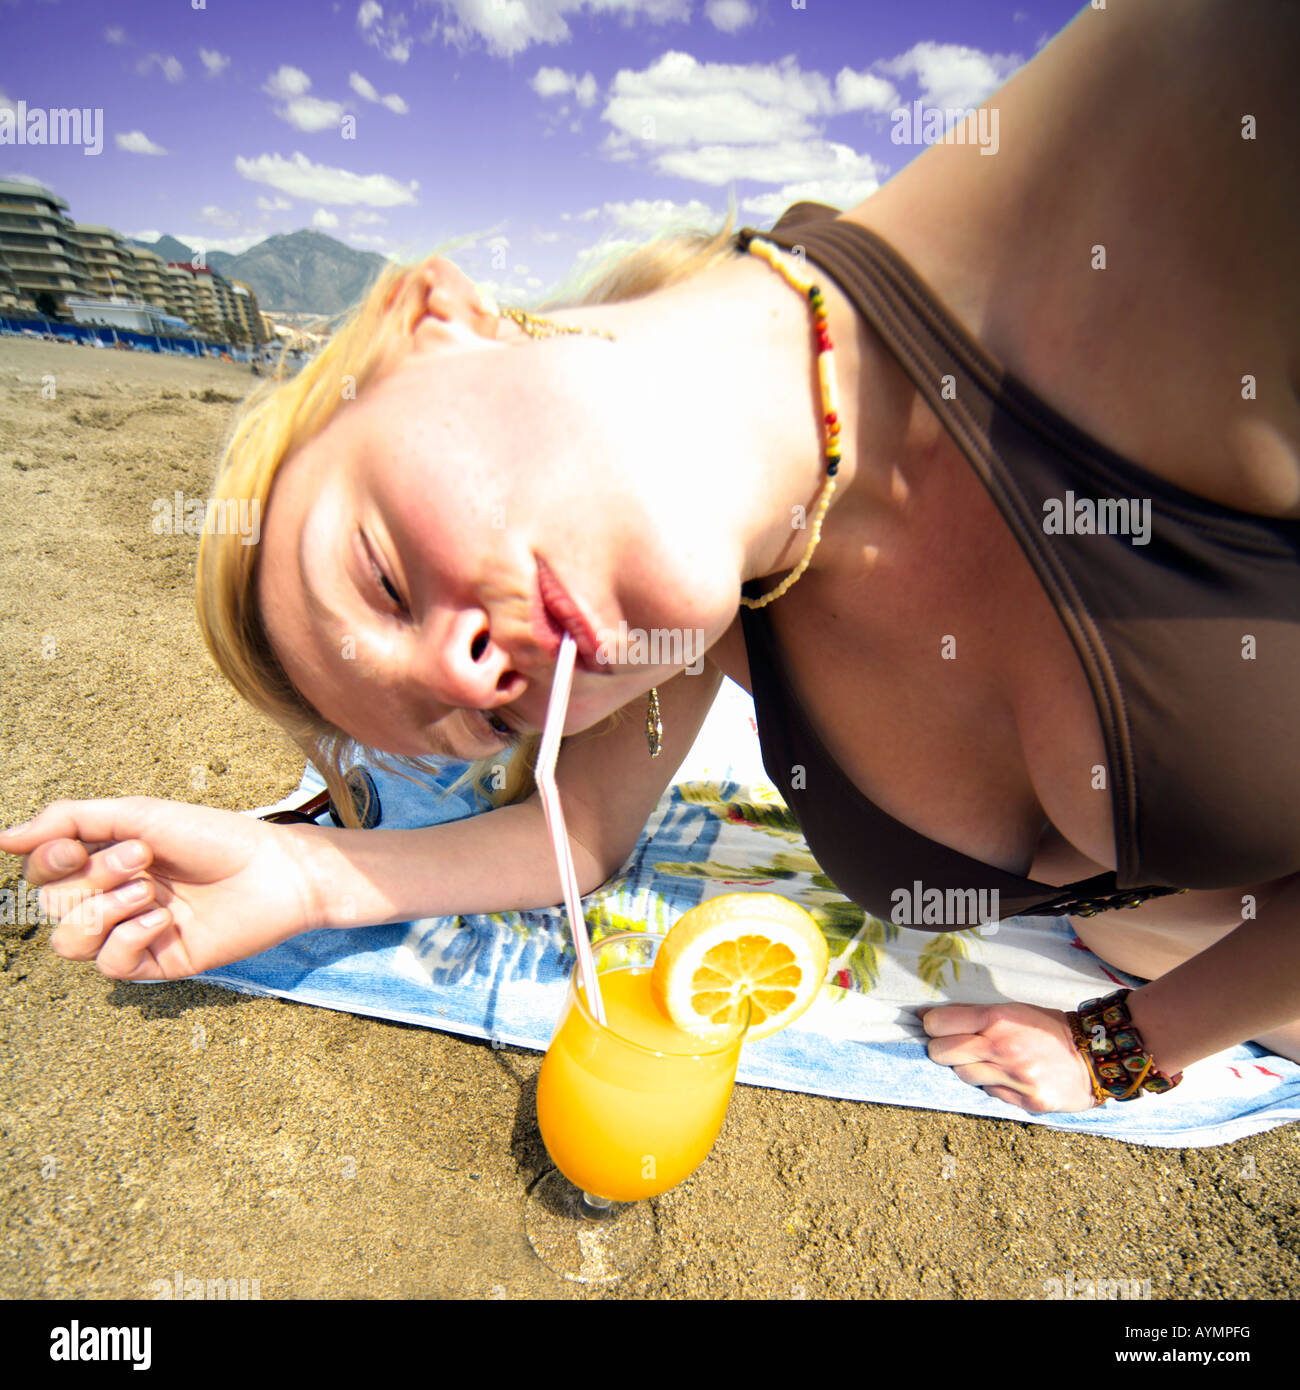 d2623b99501144 Beautiful happy young woman on Fuengirola beach, Costa del Sol, Spain,  drinking orange juice